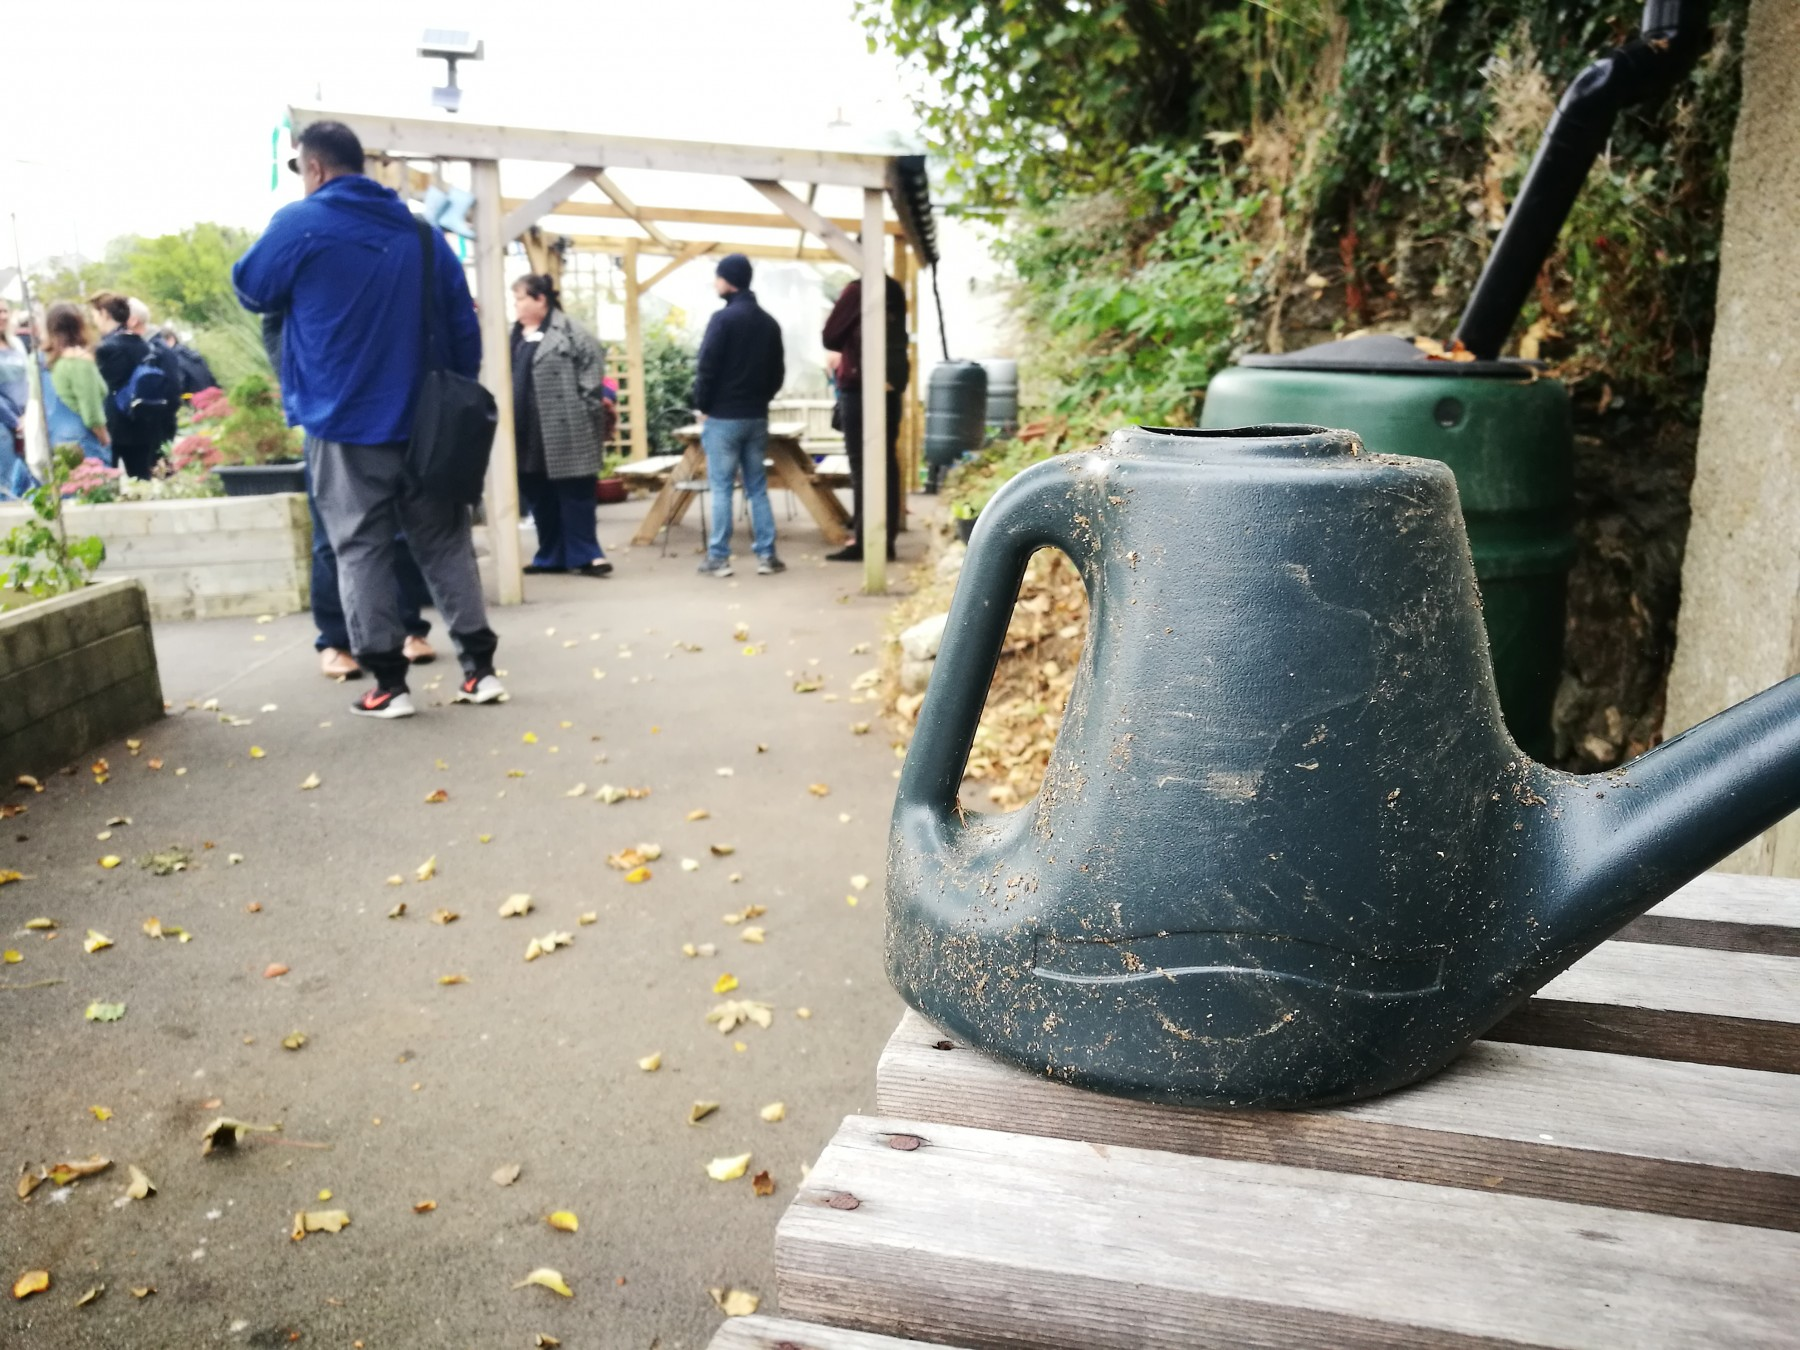 Close up of watering can in community garden